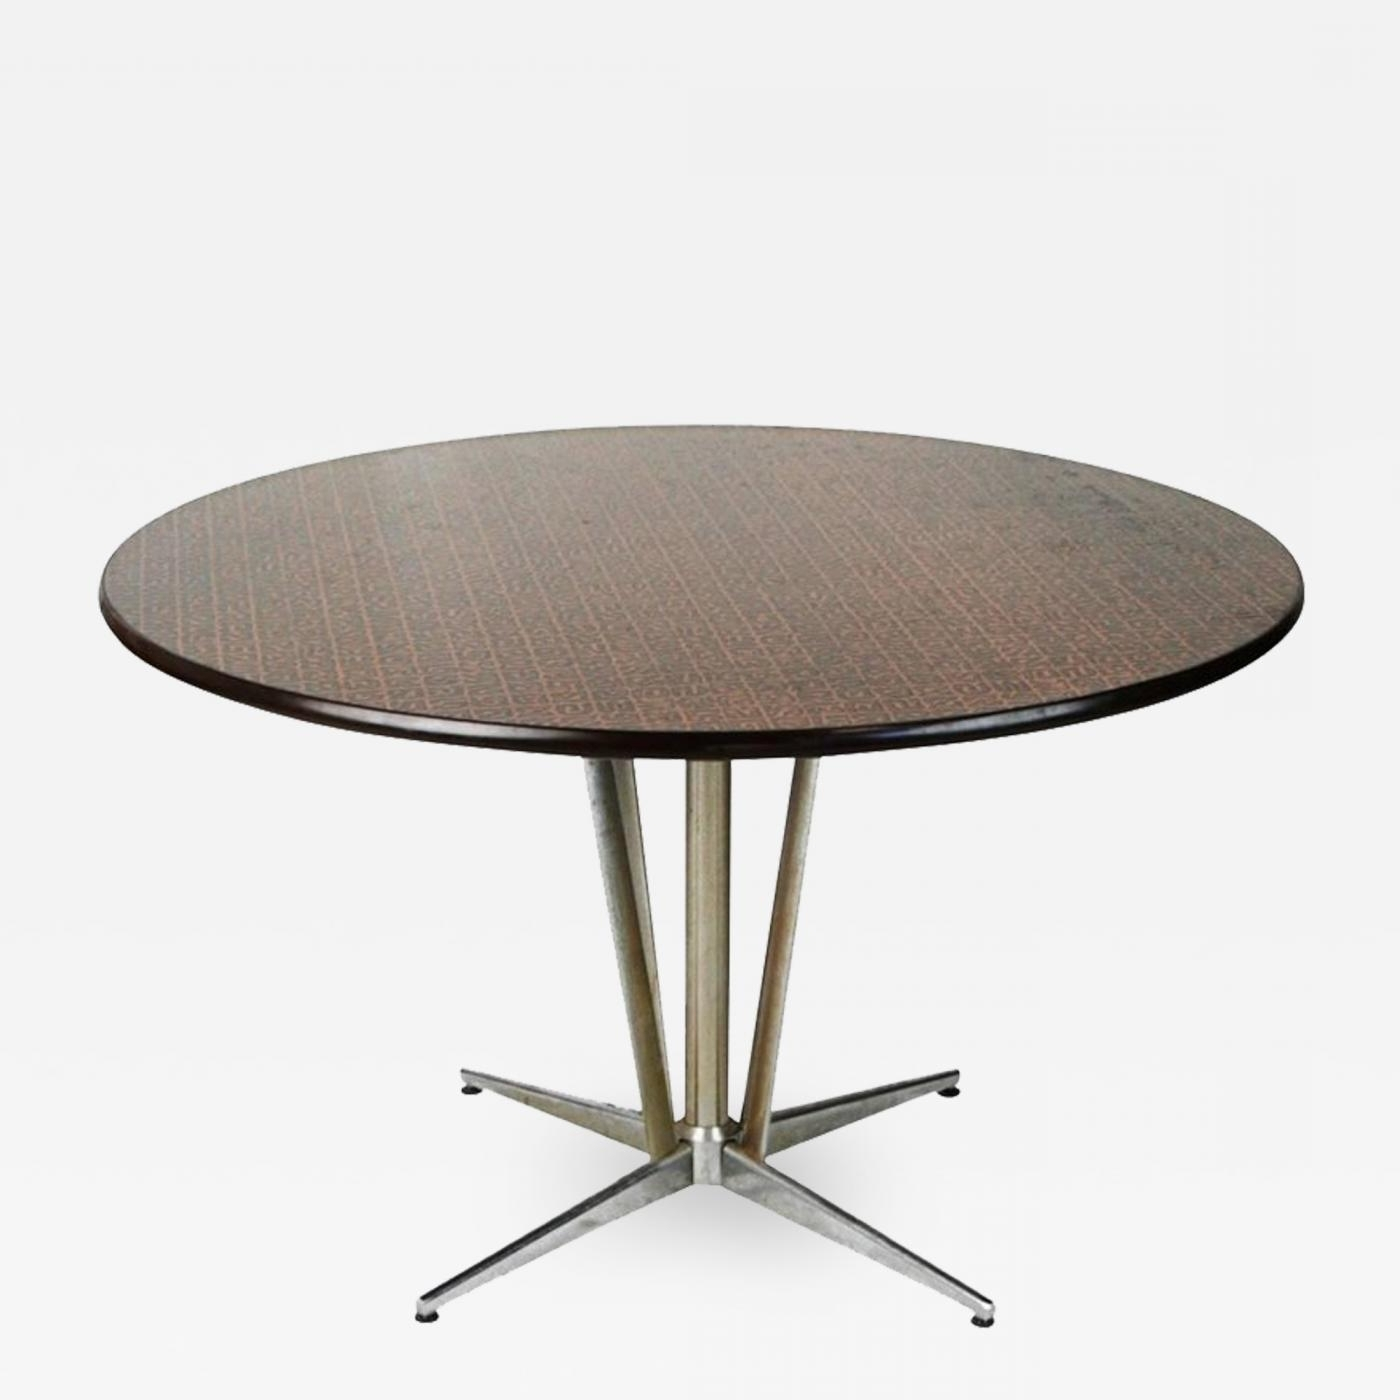 Circular Dining Tables Within Popular Hand Hammered Copper Top Circular Dining Table, Circa (View 17 of 25)